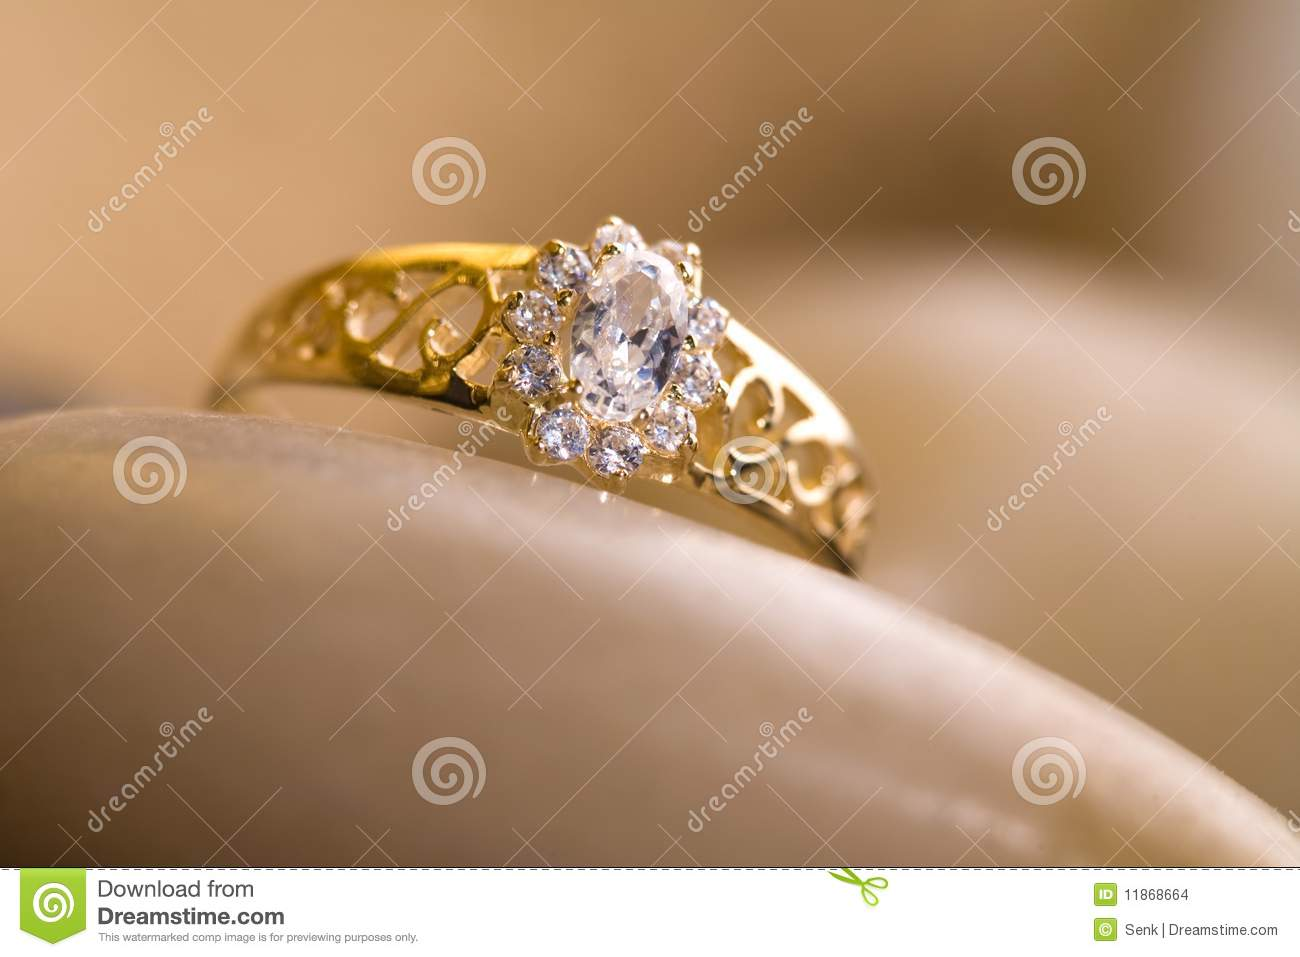 Beautiful gold ring. stock photo. Image of white, gold - 11868664